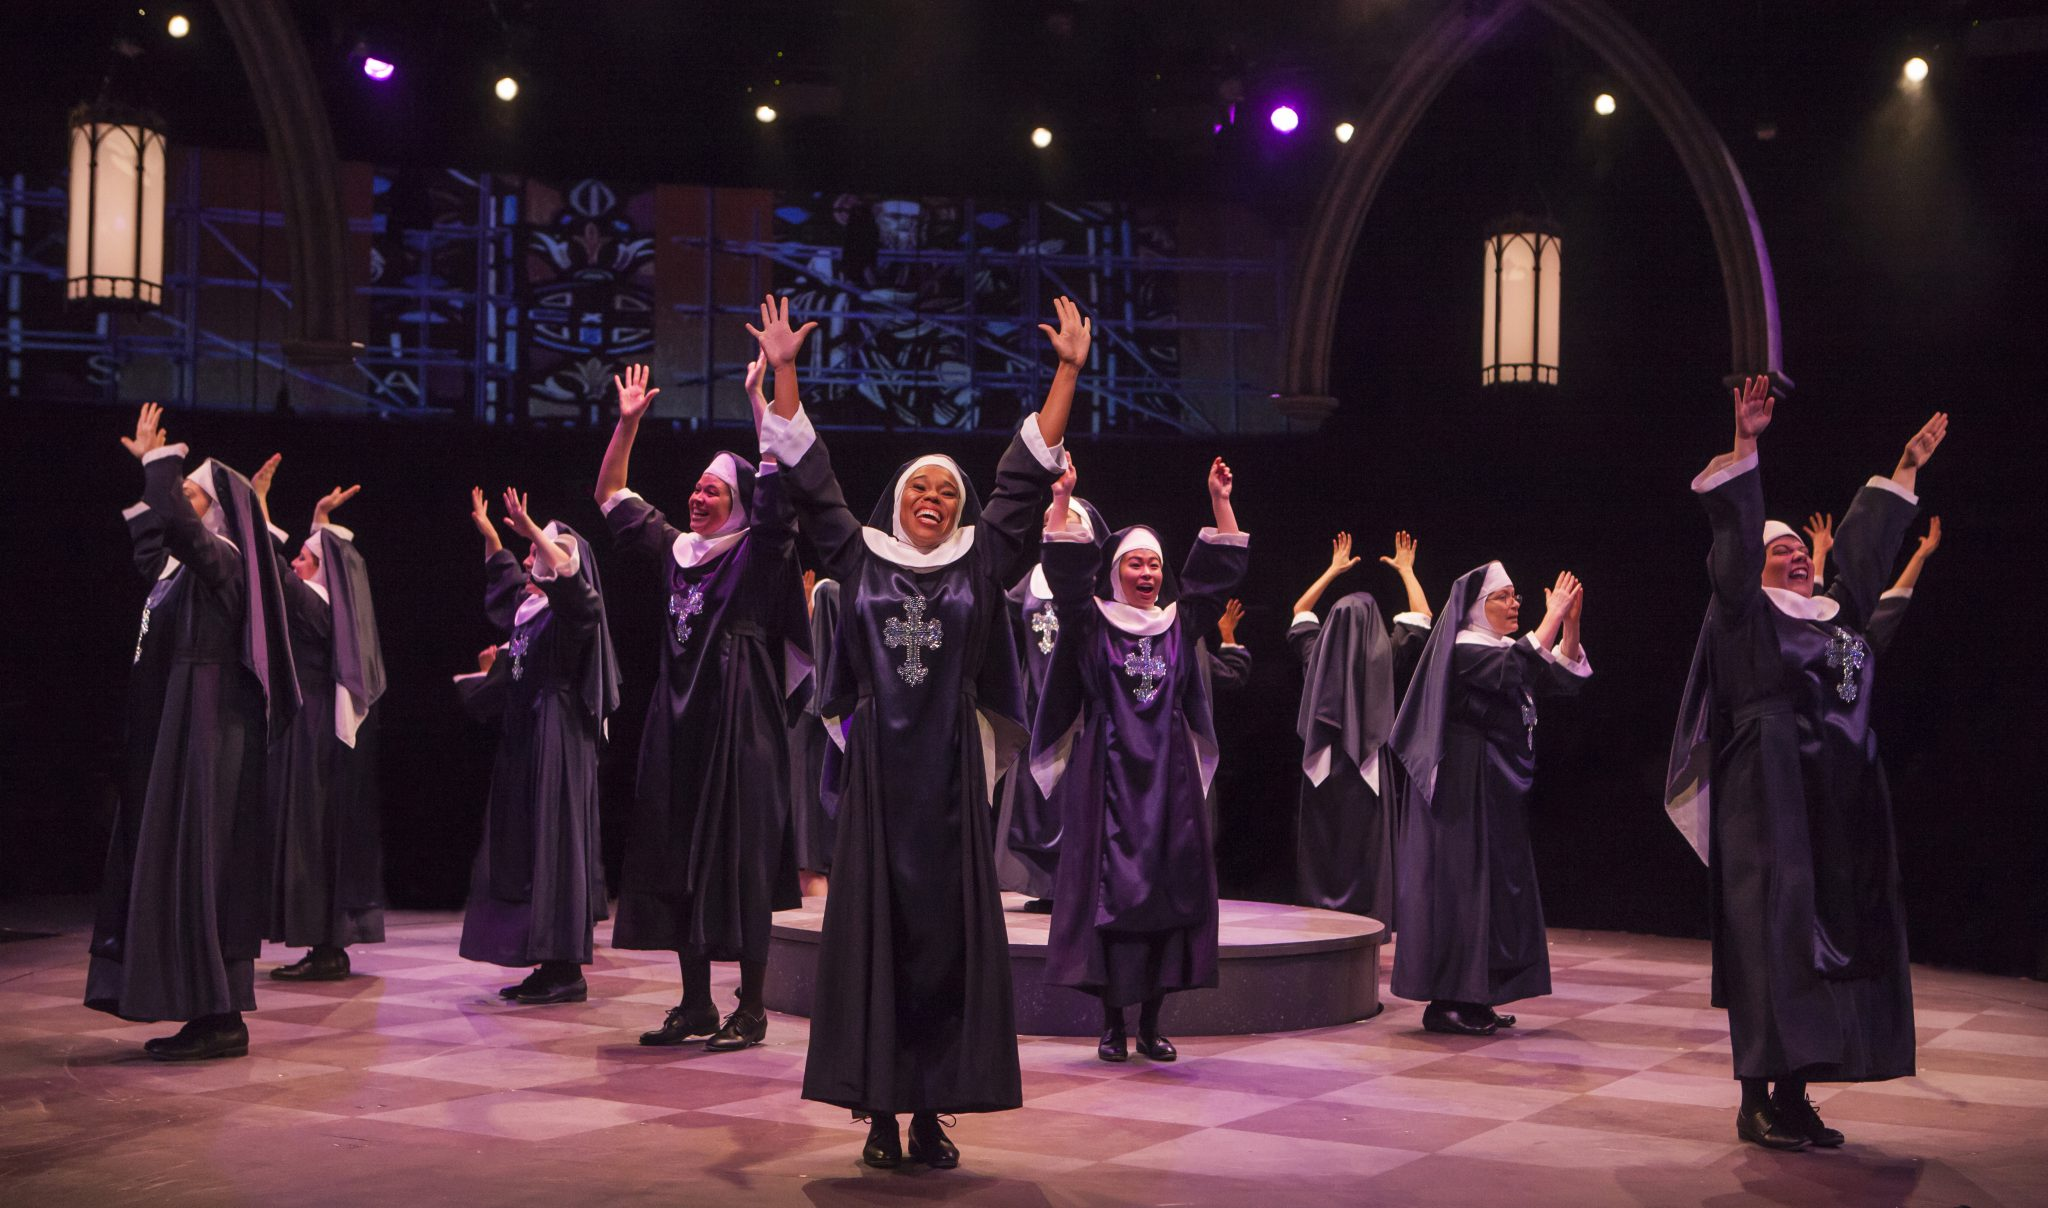 Regional Roundup: Top New Features This Week Around Our BroadwayWorld 8/25 - HAMILTON, HEDWIG, SISTER ACT and More!